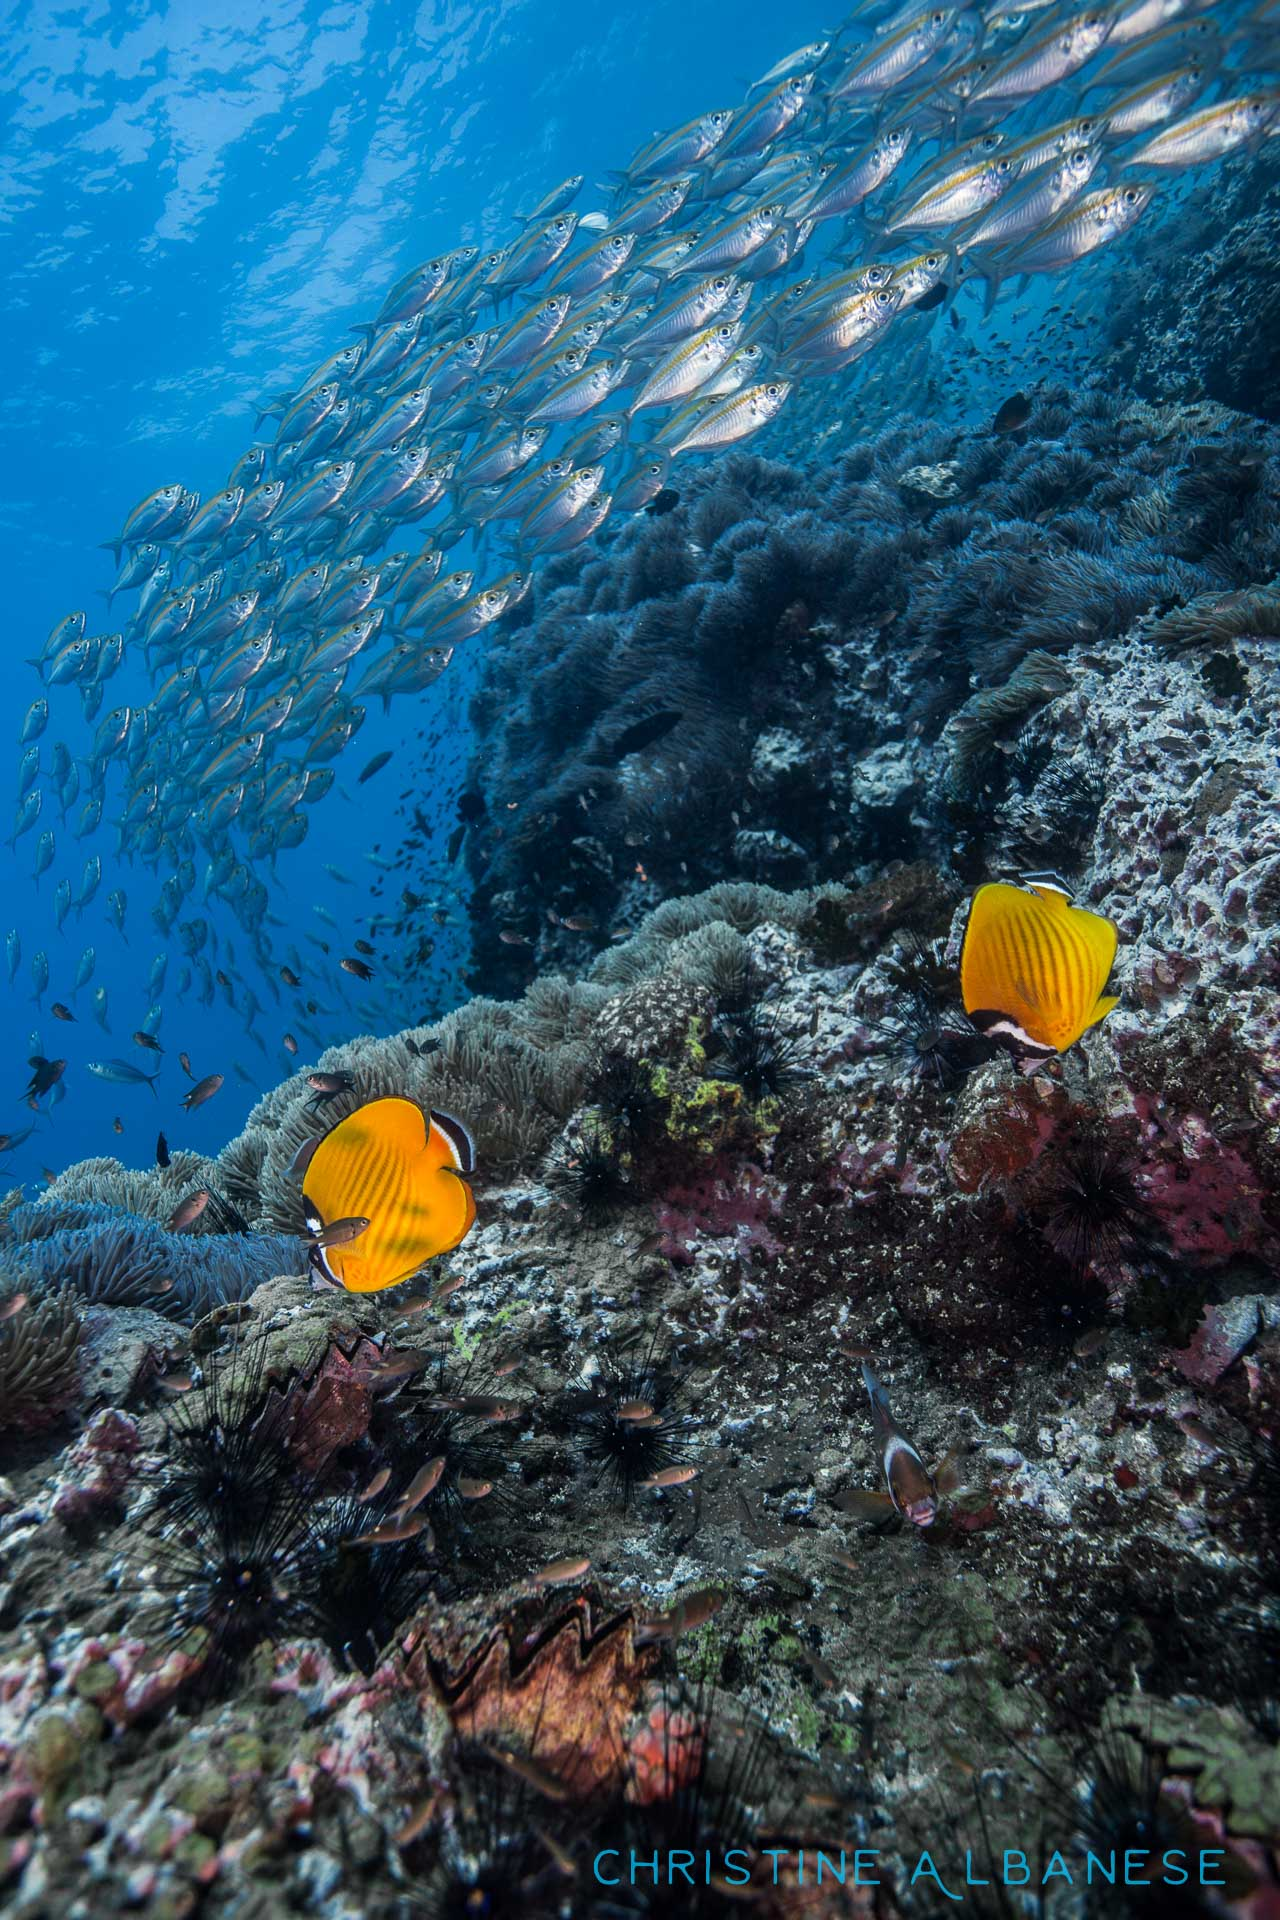 A pair of butterfly fish wander the reef while a school of scad blazes by.  Butterfly fish are common reef fish around here... but I adore photographing them because their bright yellow colour stands out so well against a rich blue background.